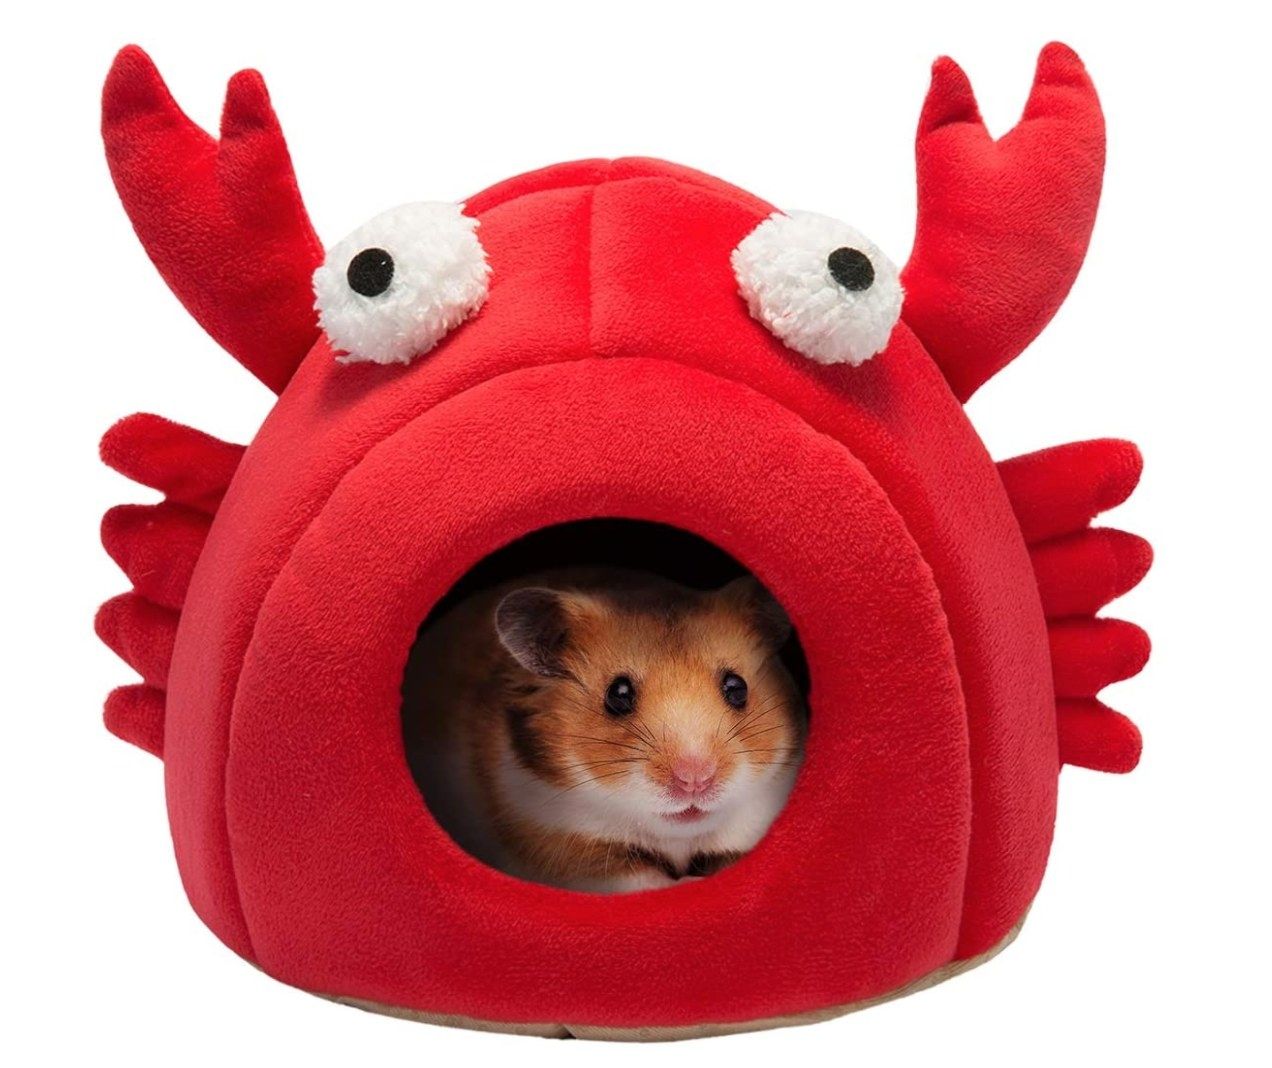 A Guinea pig sitting inside a plush red crab-shaped bed